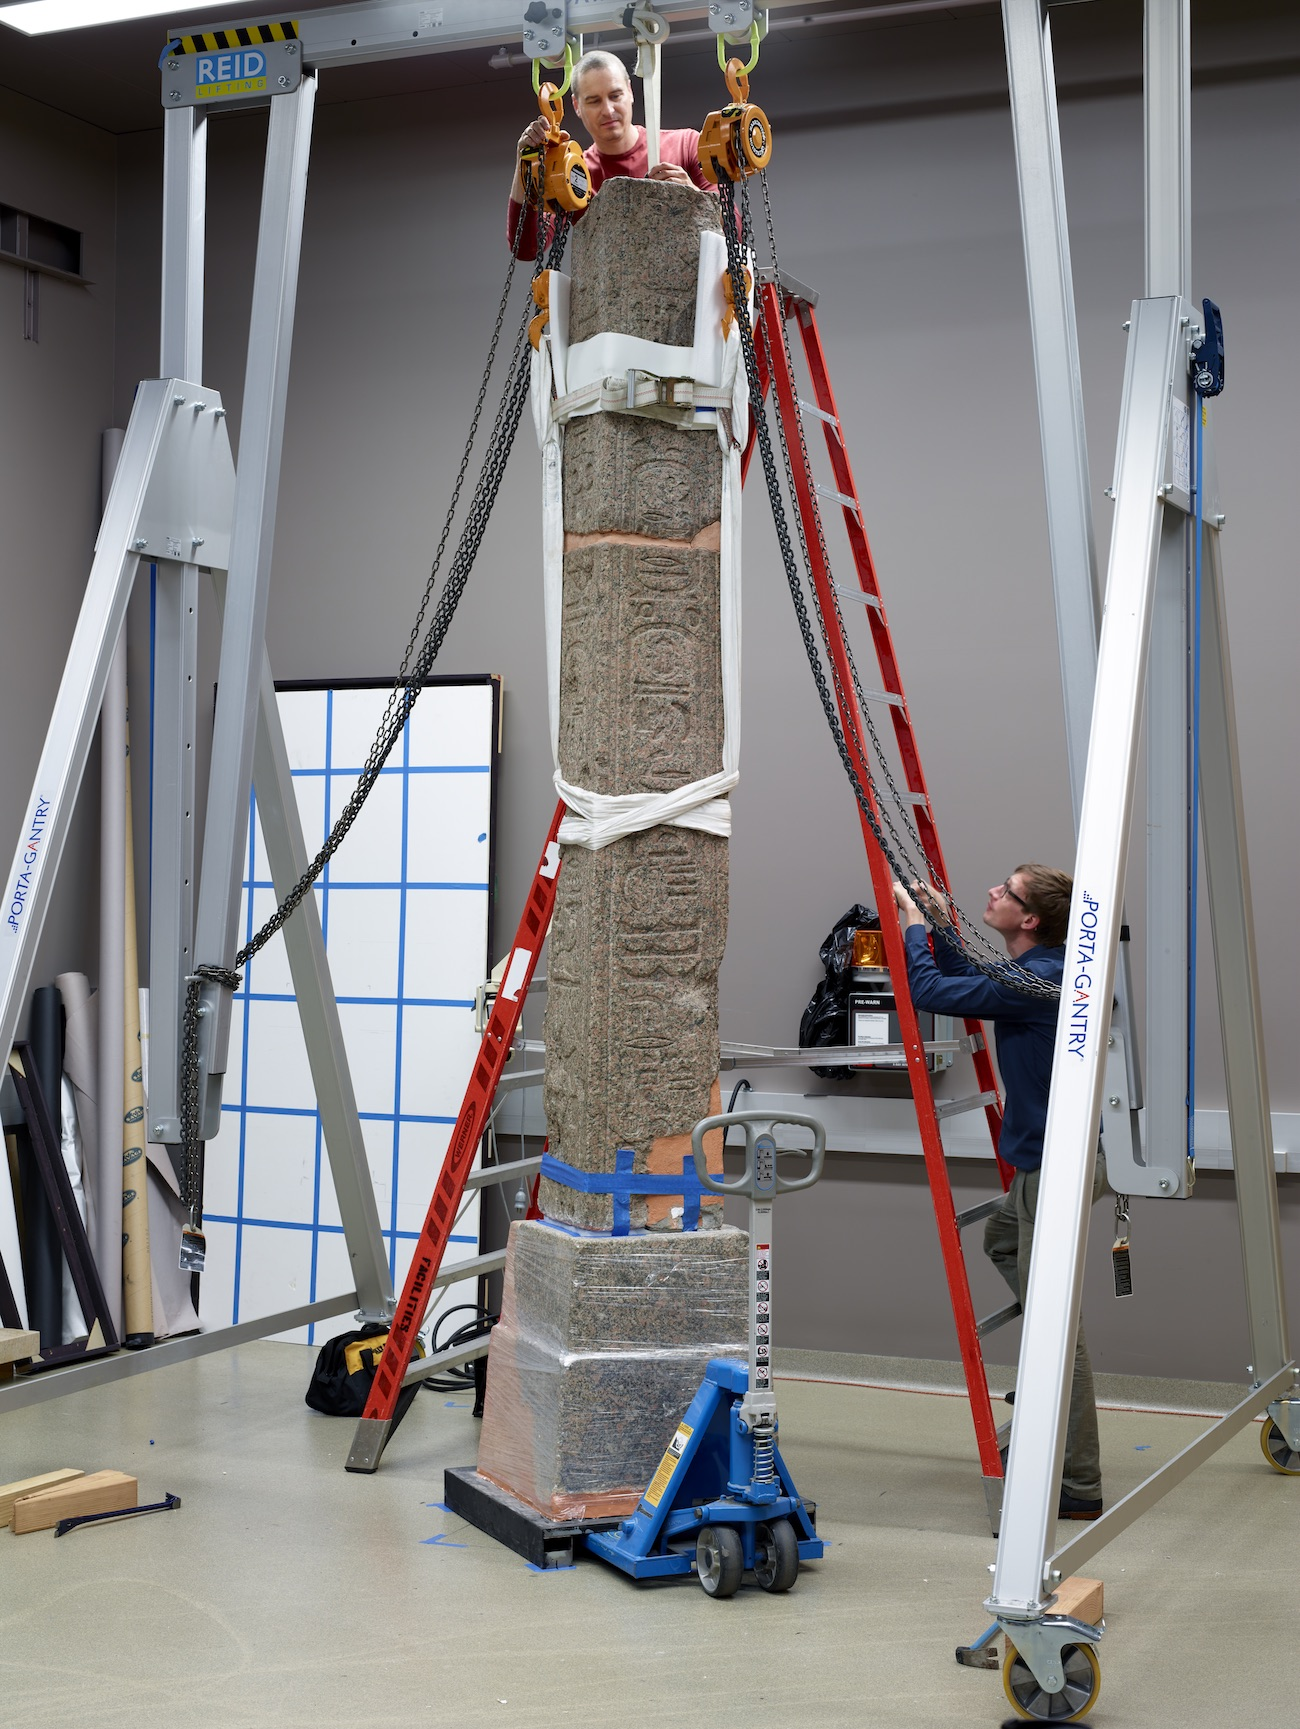 An obelisk stands upright in a conservation studio, held safely by ropes and mechanical equipment